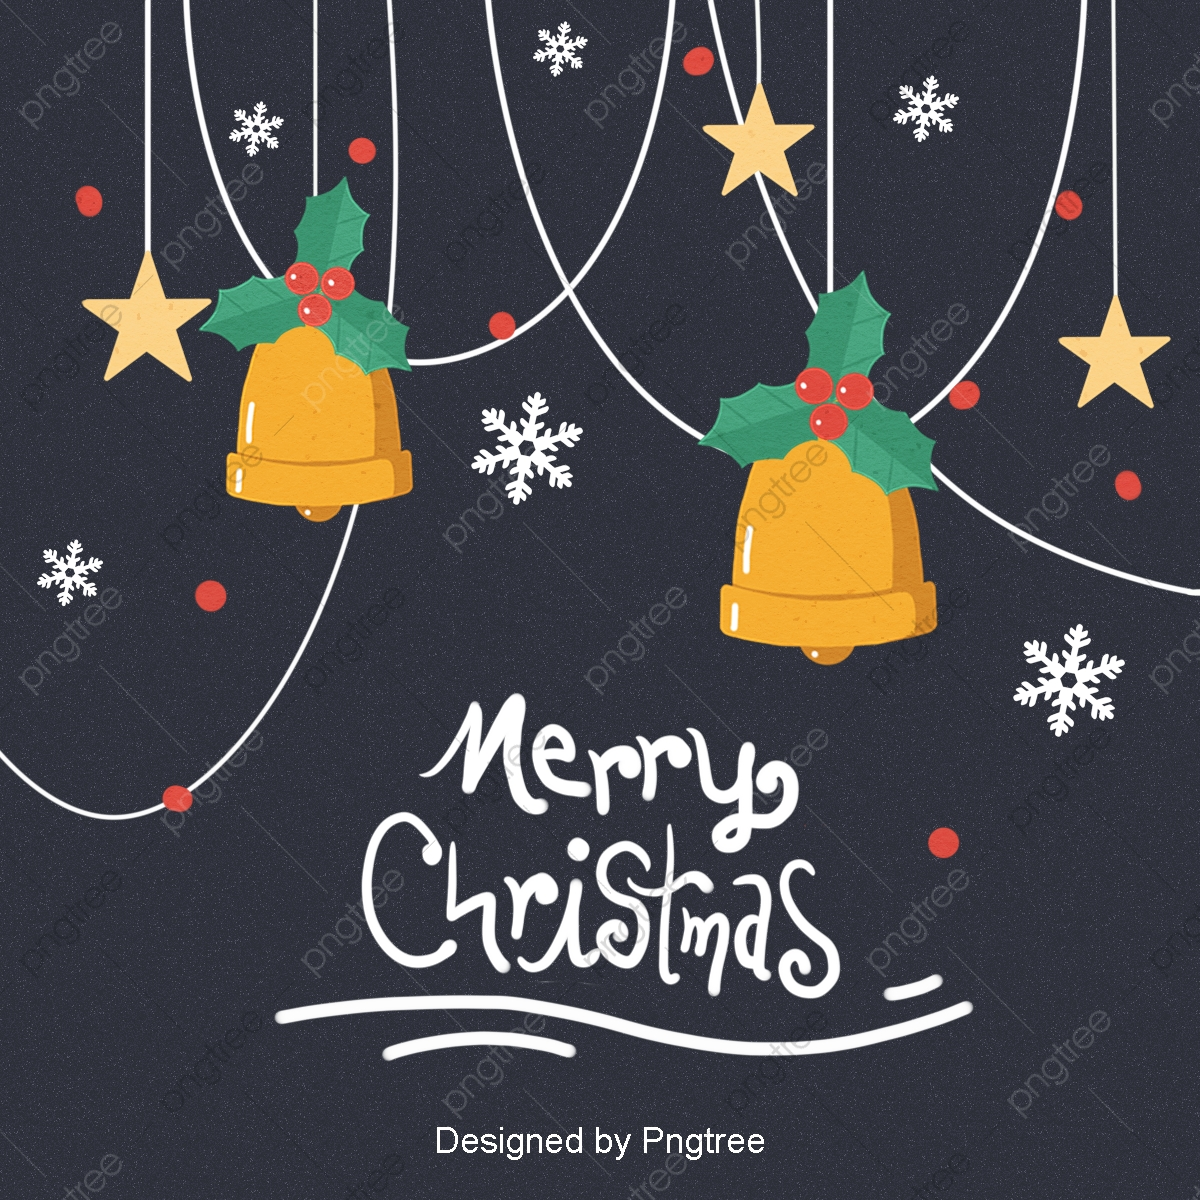 Simple Cute Cartoon Cute Christmas Card Background